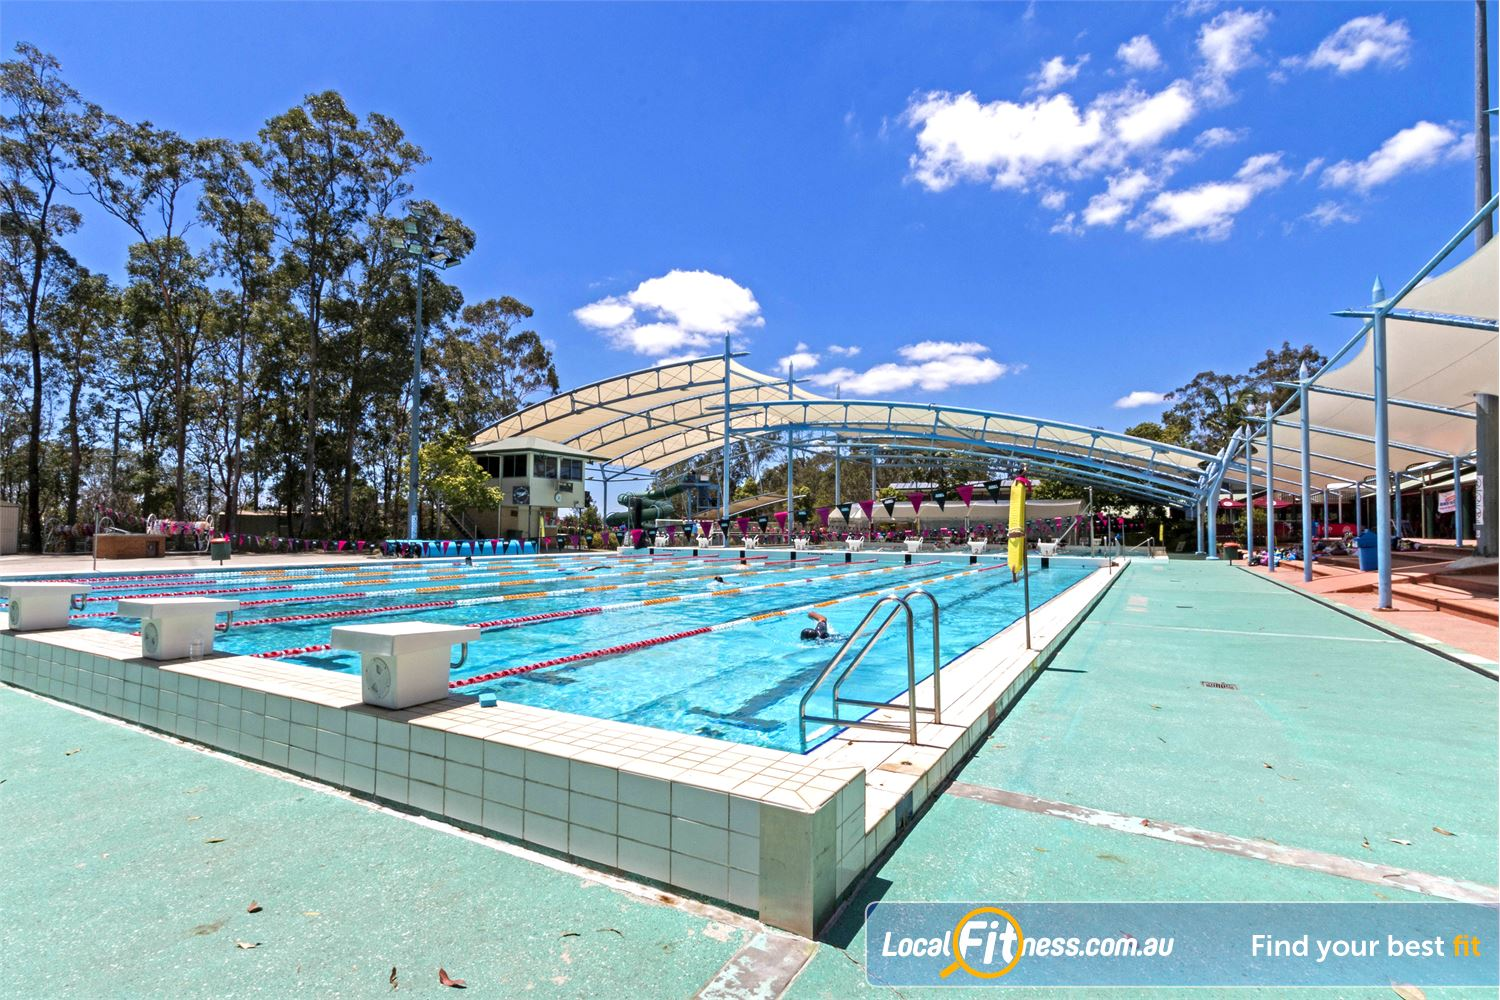 Albany Creek Leisure Centre Albany Creek The heated outdoor 50m Albany Creek swimming pool.